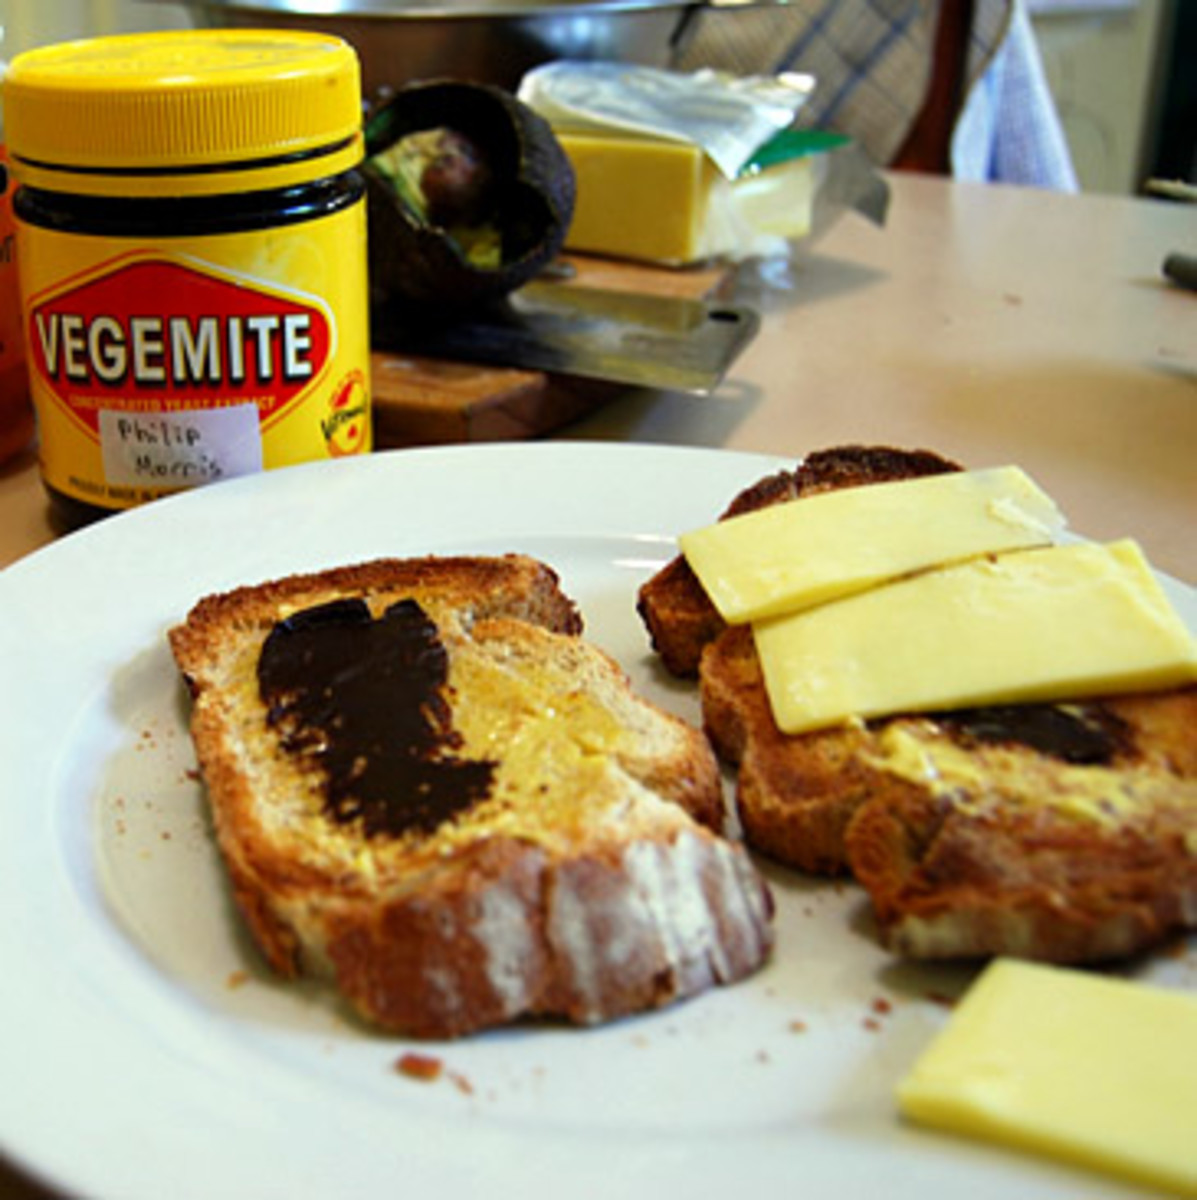 There are many ways to dress up a plain Vegemite sandwich - Vegemite and cheese slices is a very popular way to enjoy a Vegemite sandwich, plus it adds a good source of dairy & an extra cheesy flavour & texture to an otherwise plain sandwich filling.